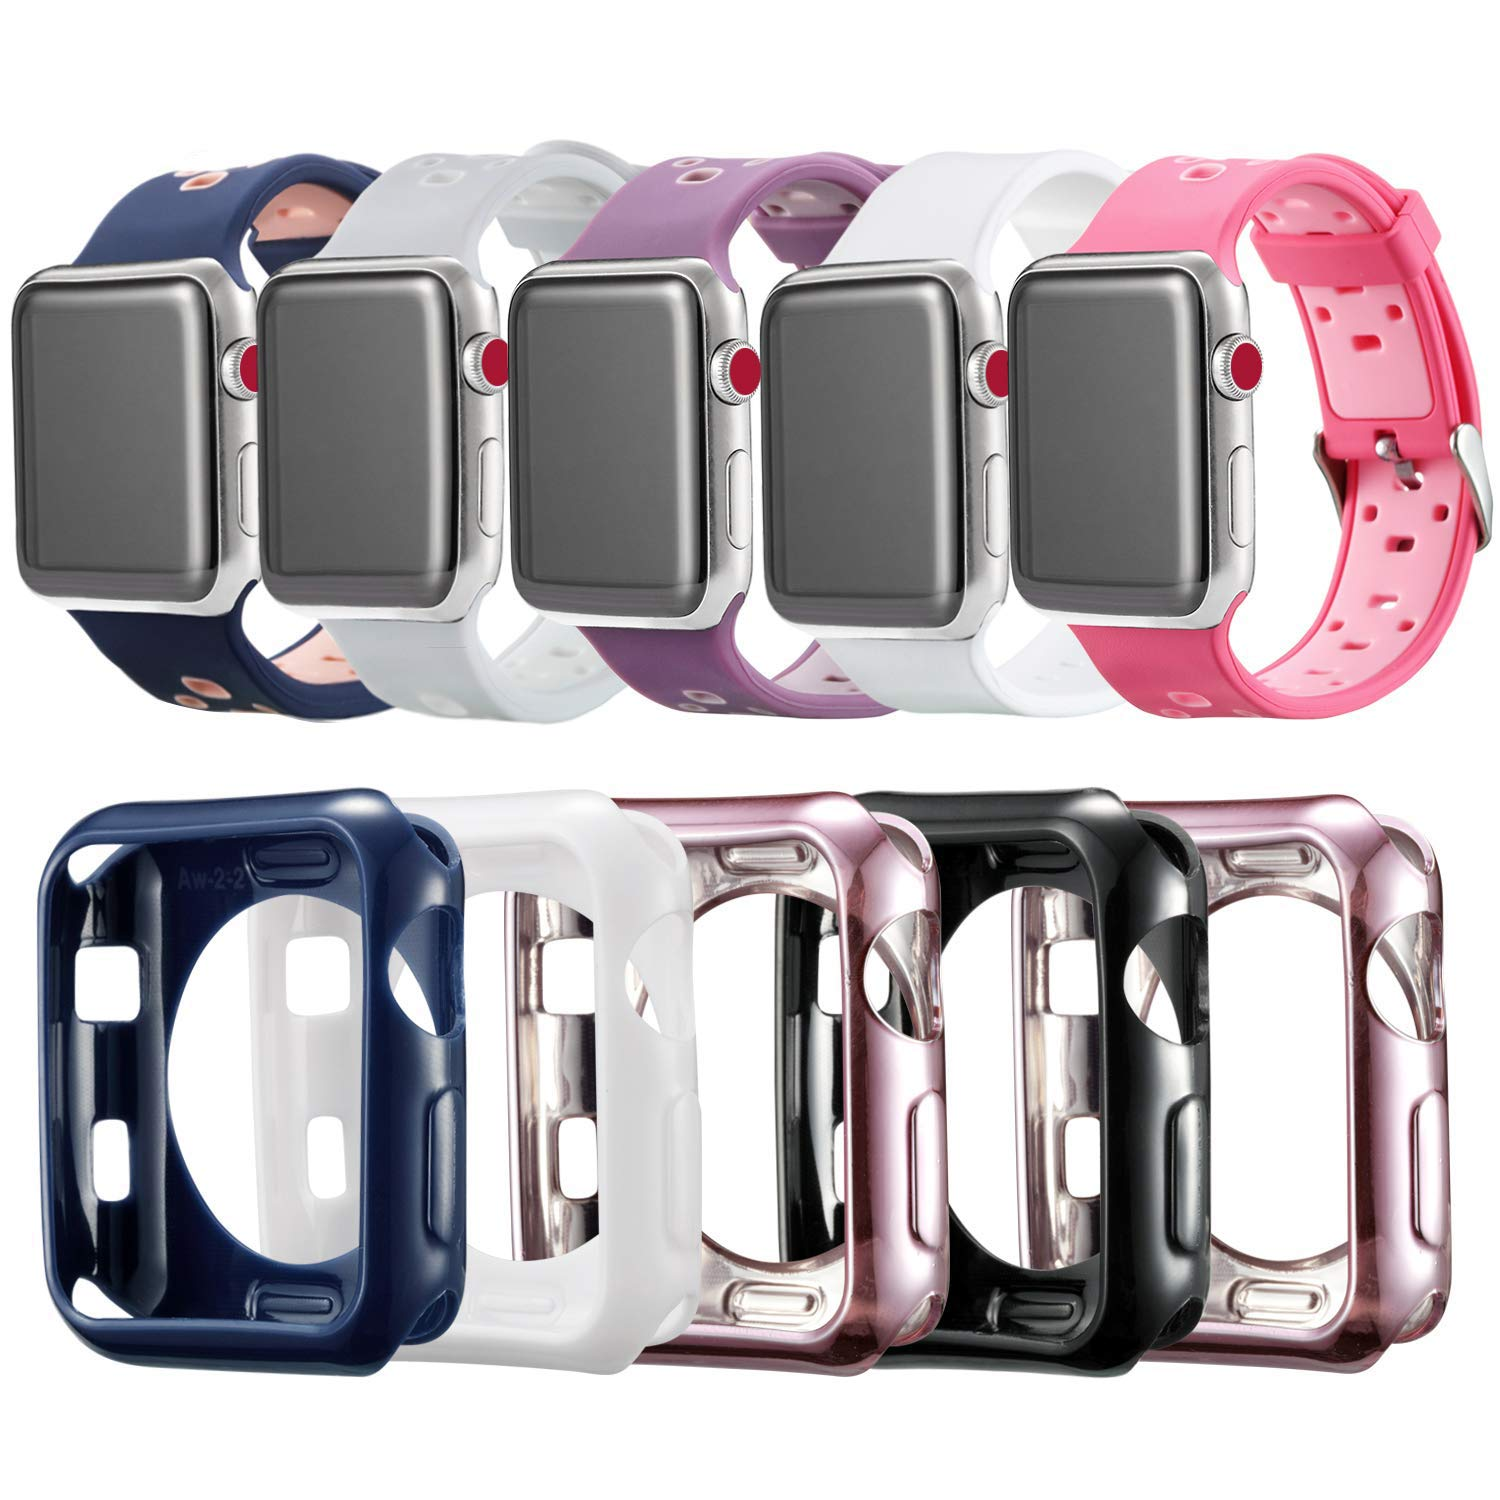 Compatible Apple Watch Band Case 38mm [5 Pack], MAIRUI Protector Bumper Cover TPU Ultra-Slim with Silicone Strap Wristband for Apple Watch Series ...